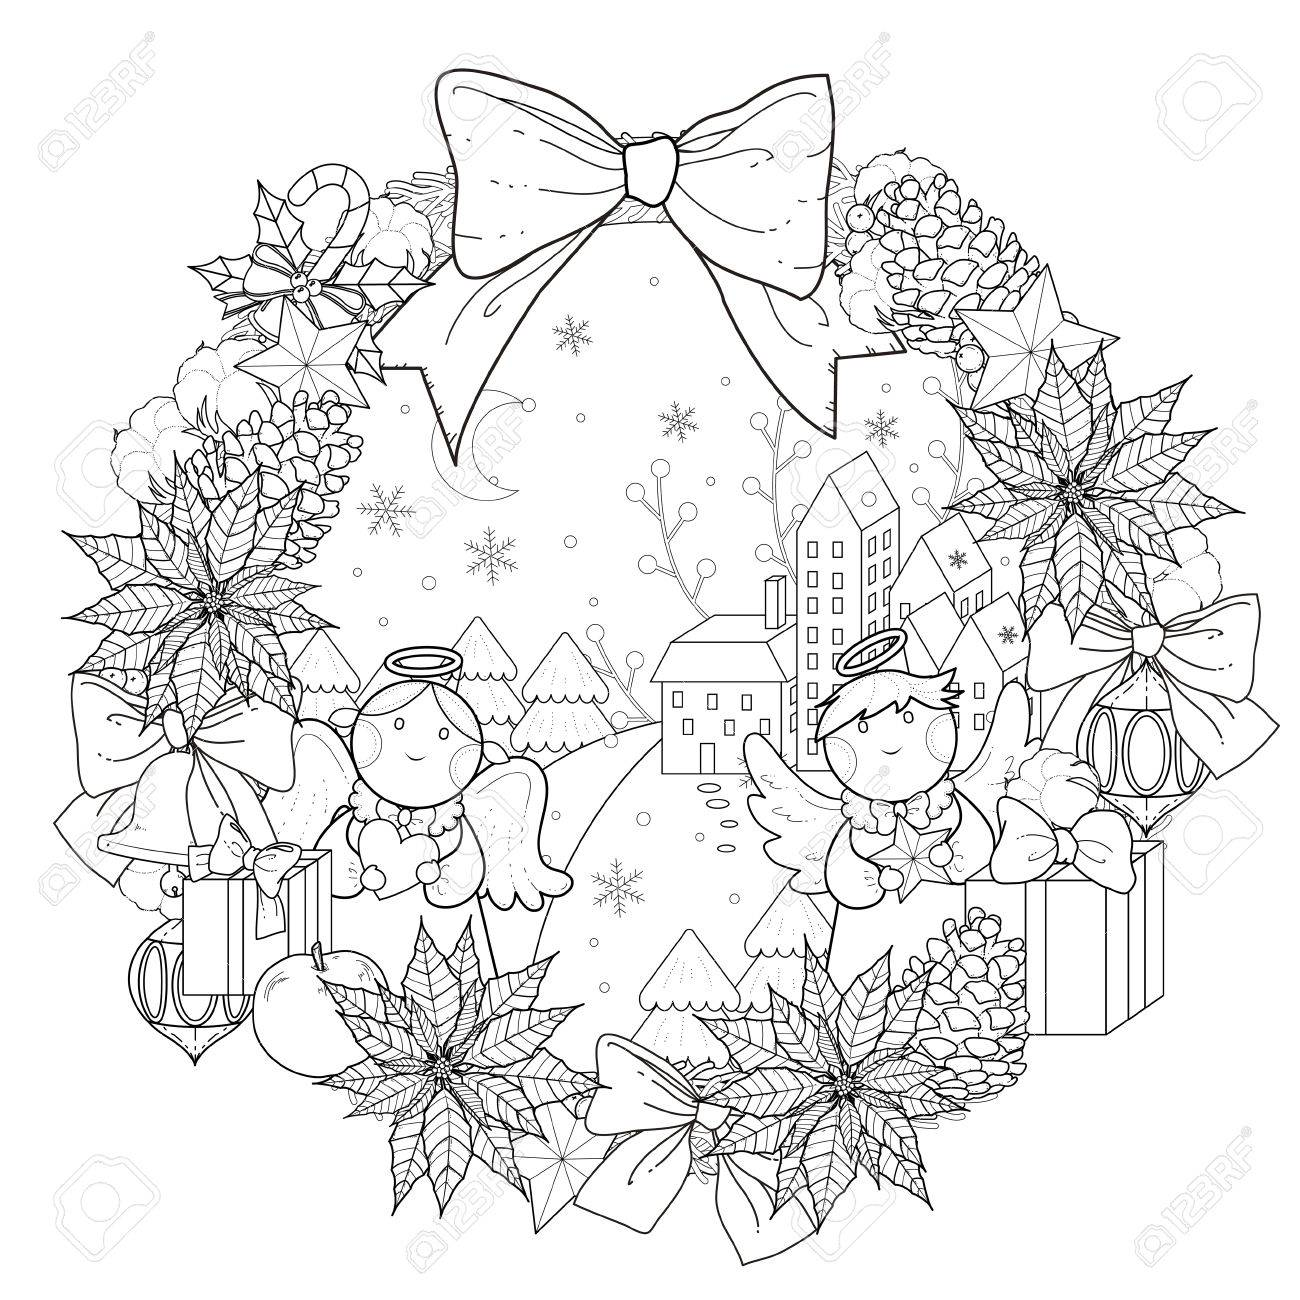 christmas wreath coloring page with decorations in exquisite line stock vector 49729252